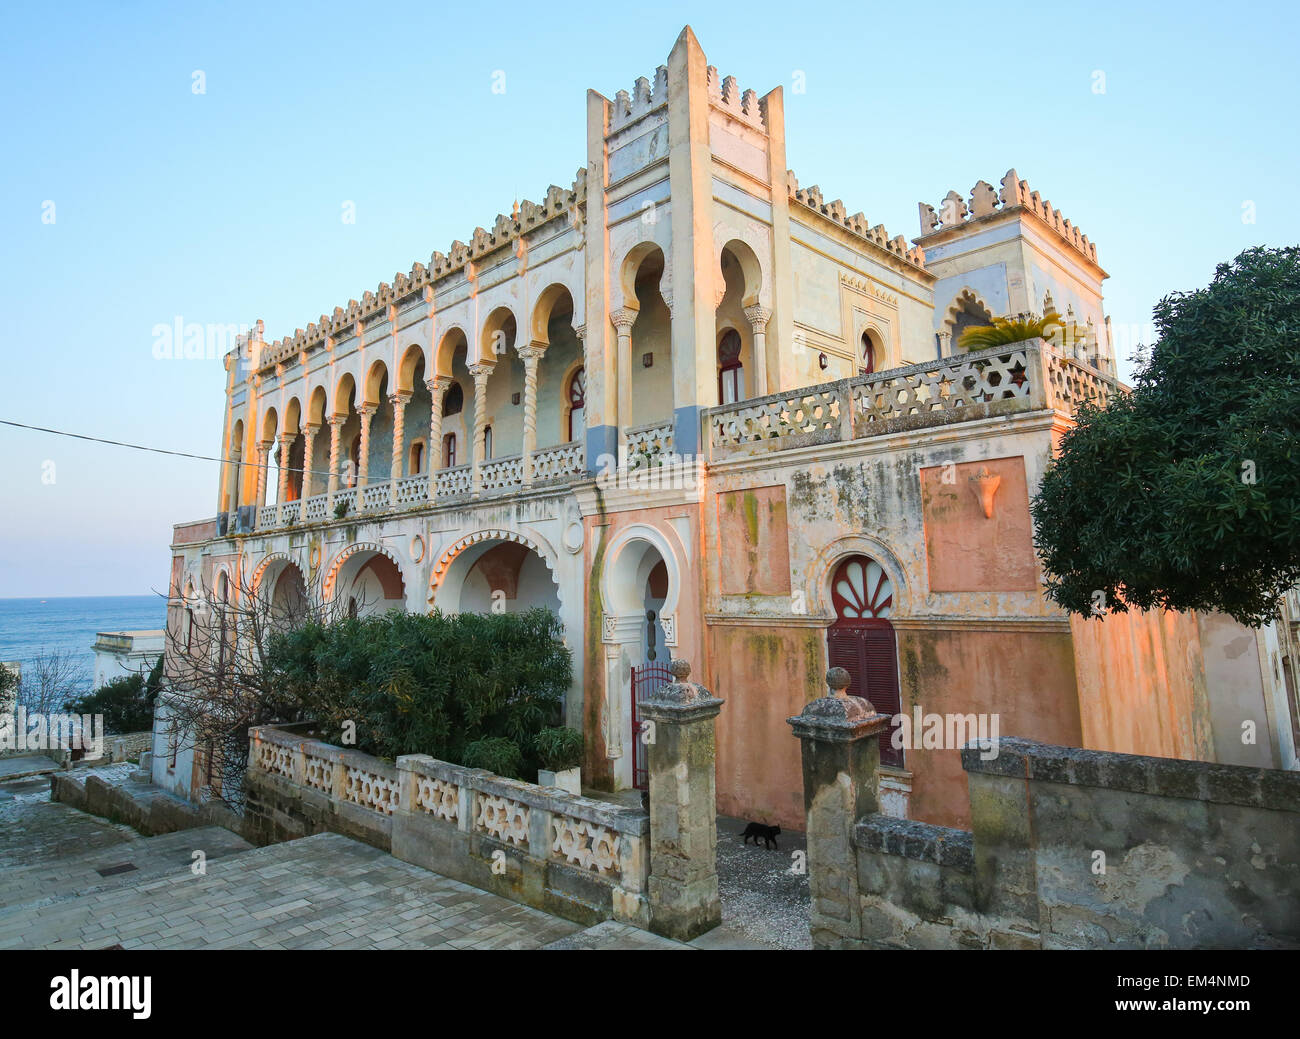 Villa Sticchi in Santa Cesarea Terme, created between 1894 and 1900 in the Moresque style at the Salento coast in - Stock Image